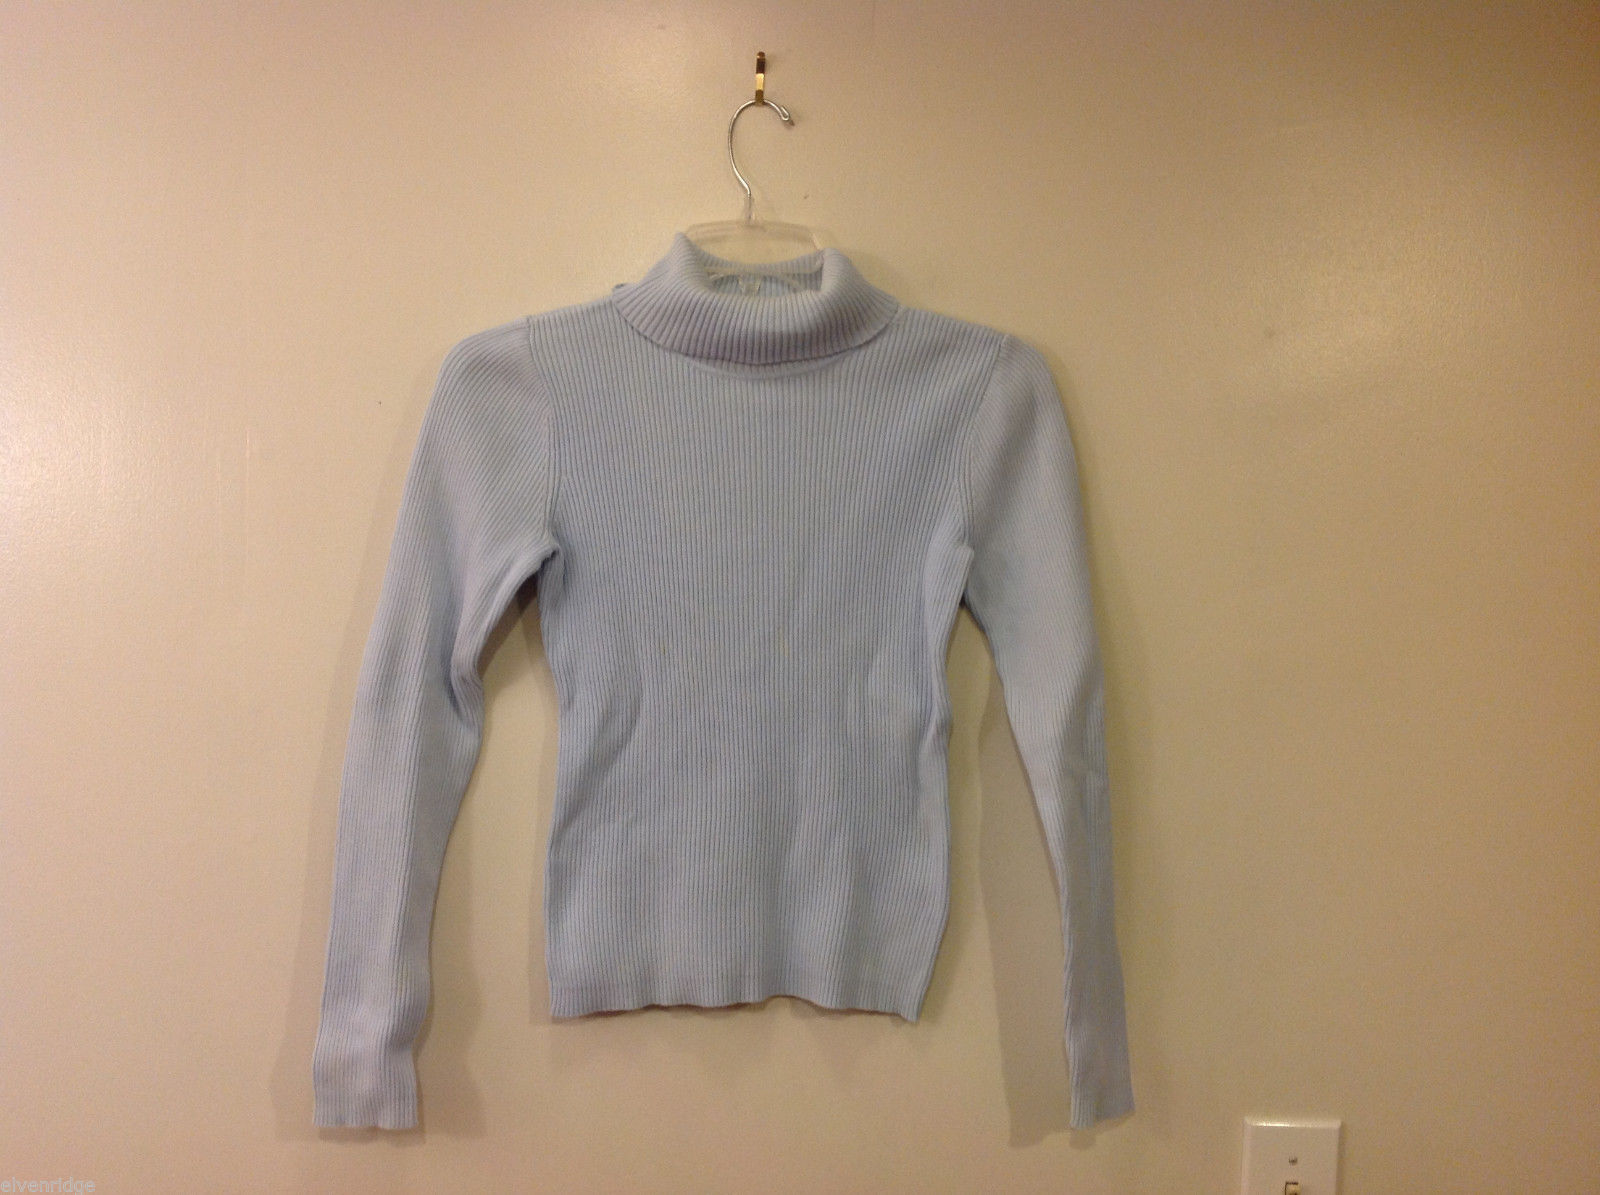 GAP Women's Size S Turtleneck Sweater Top Ribbed Knit Light Powder Pastel Blue